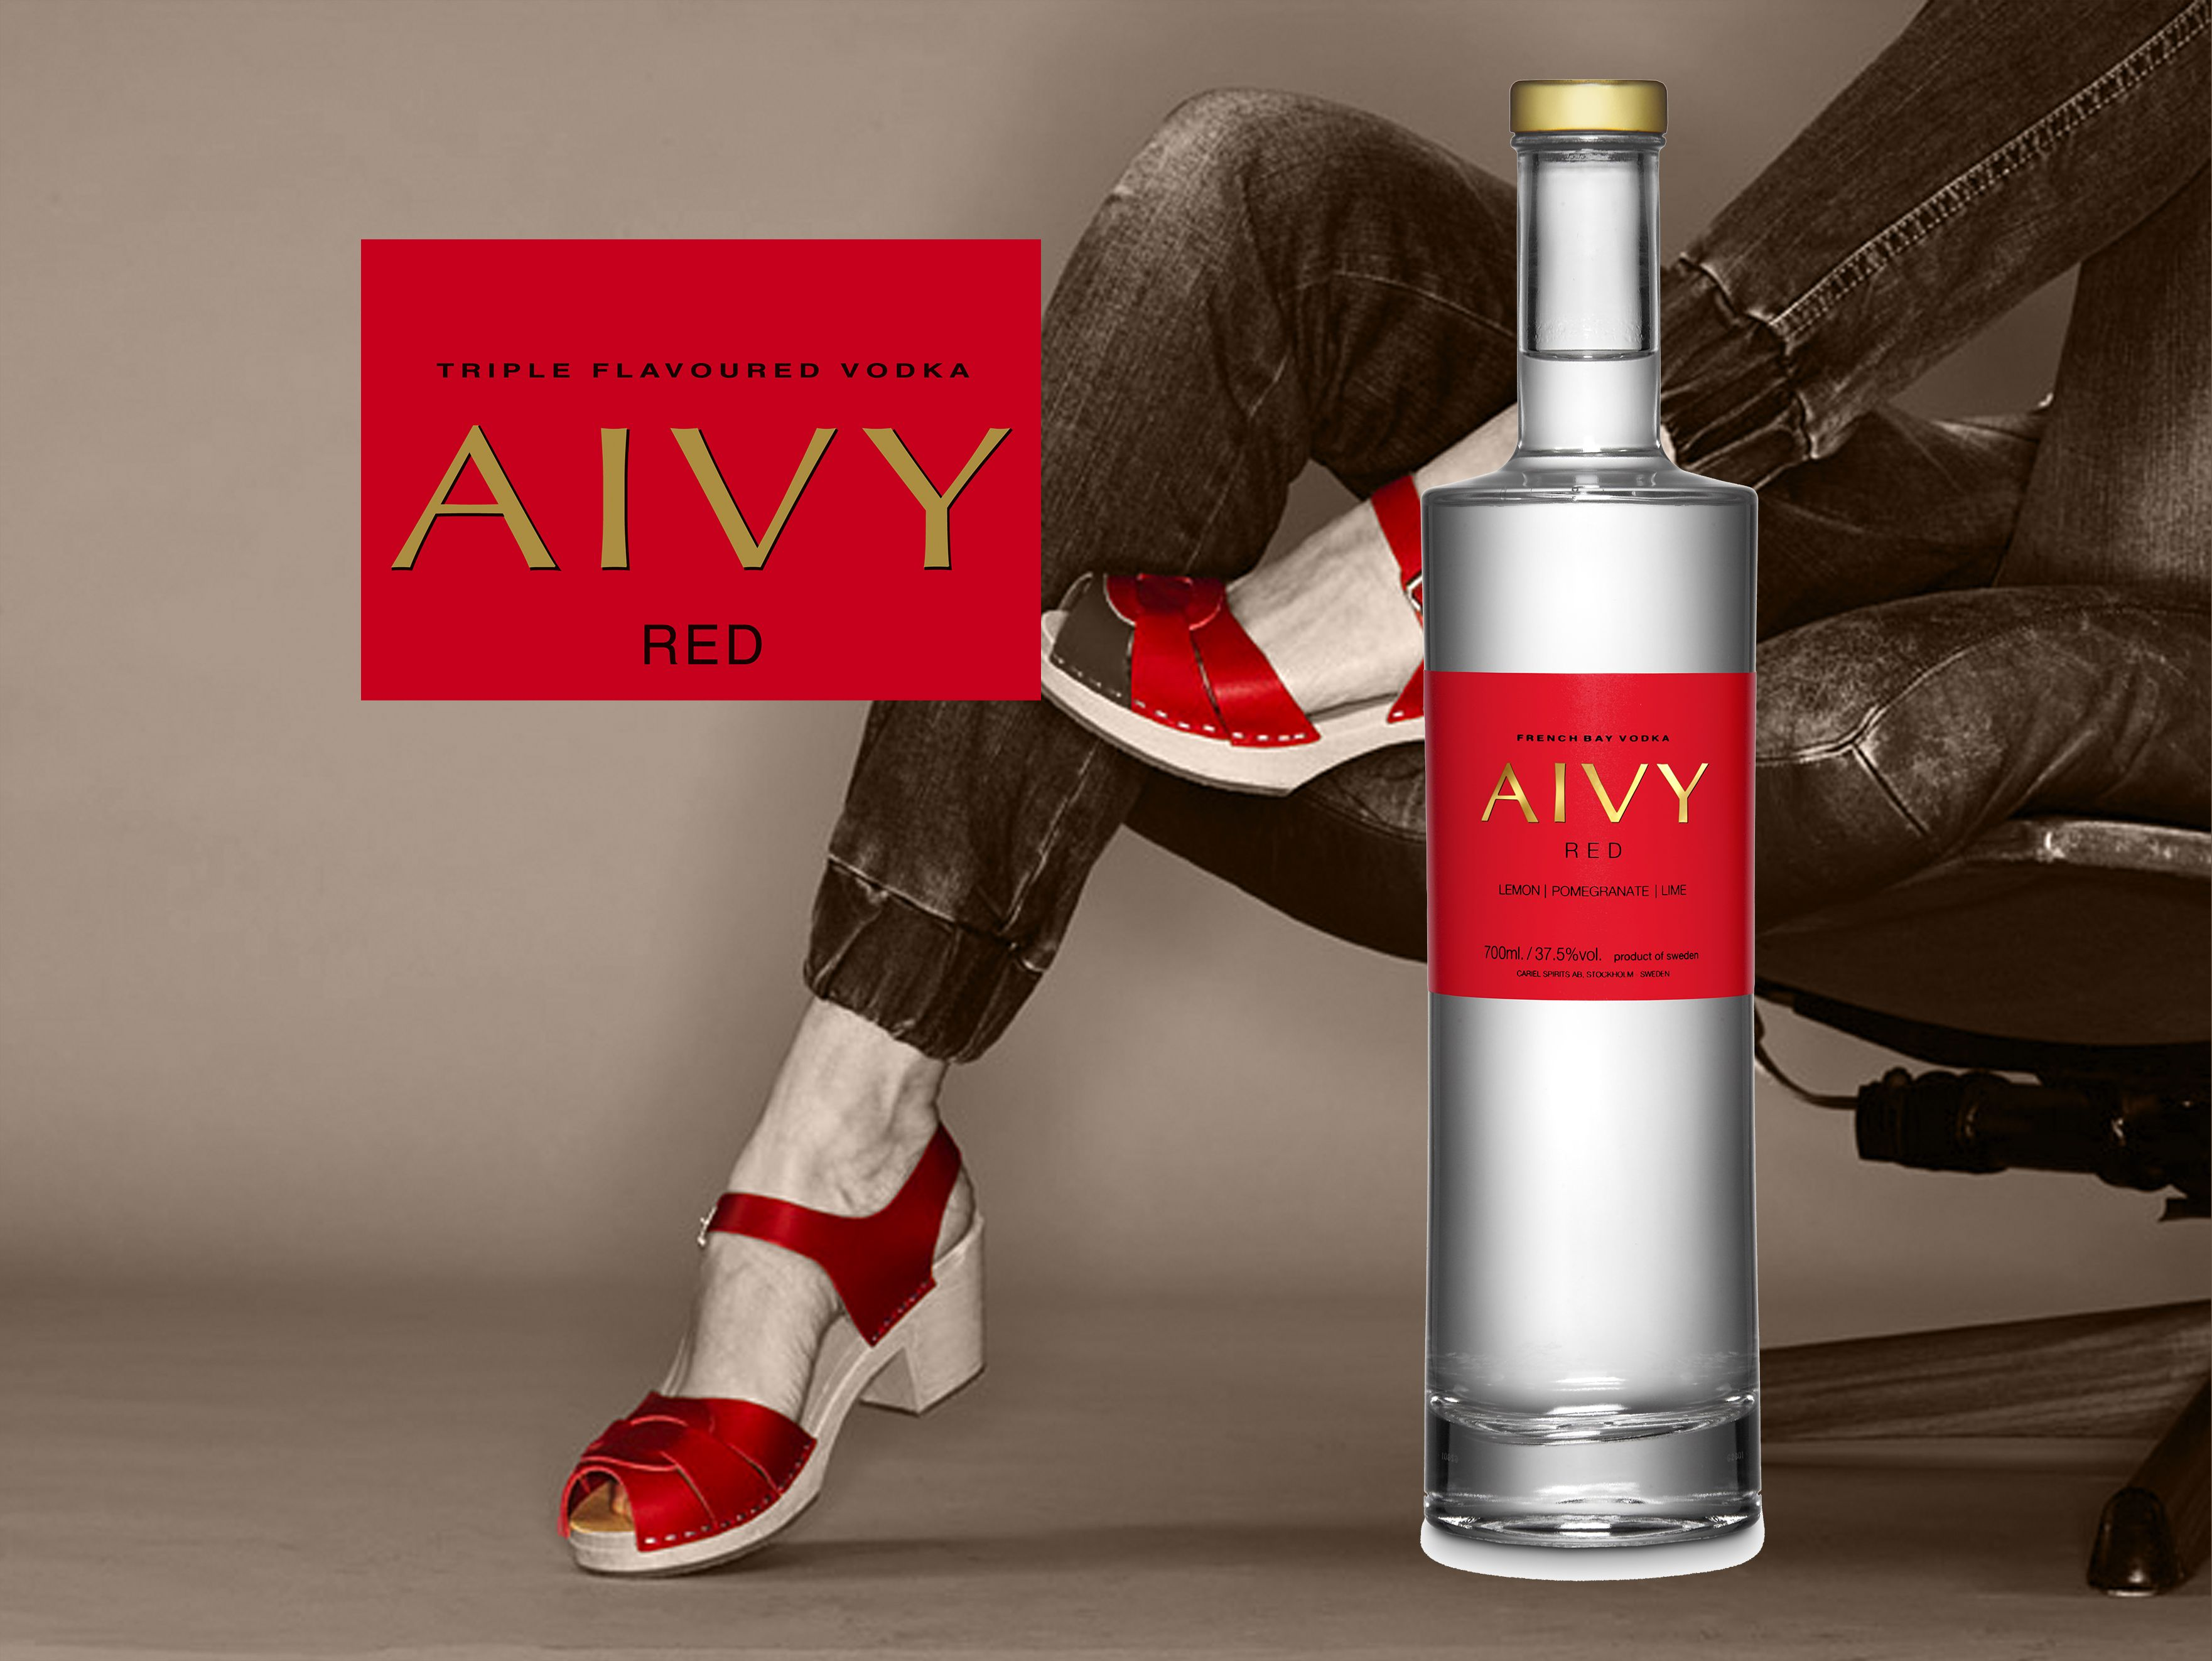 Aivy Red Vodka Pomegranate Lemon And Lime This Triple Flavoured Vodka From Sweden And Makes The Perfect Ingredient For Every Cocktail